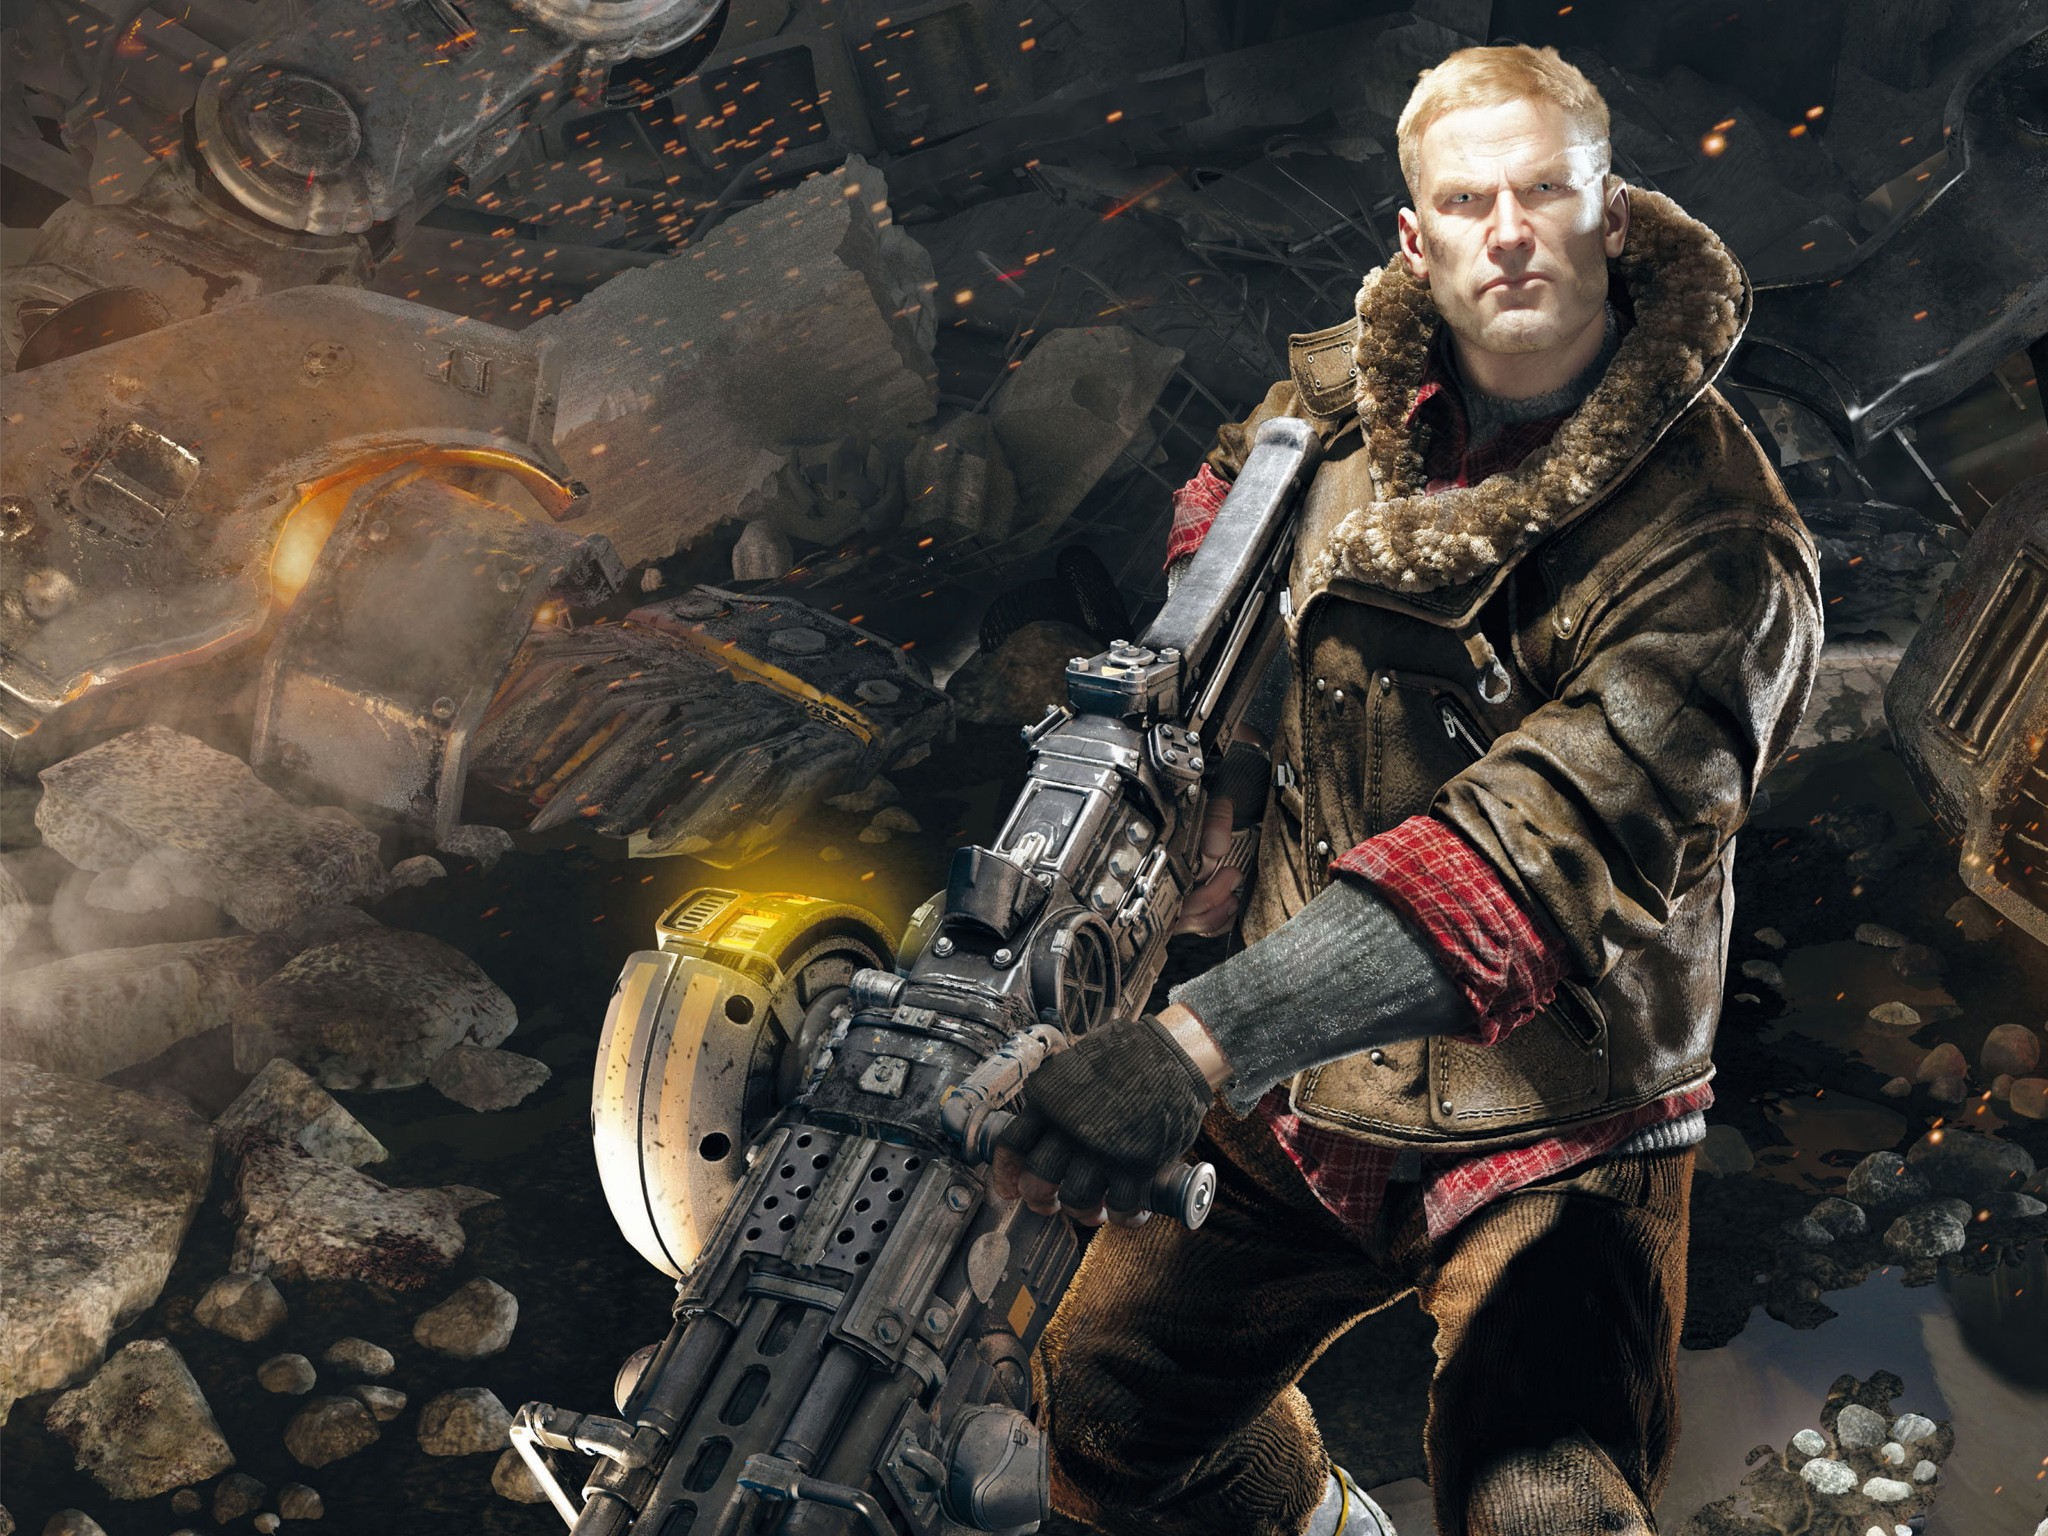 Fall Out 4 Hd Wallpapers Bj Blazkowicz In Wolfenstein The New Order Wallpapers Hd